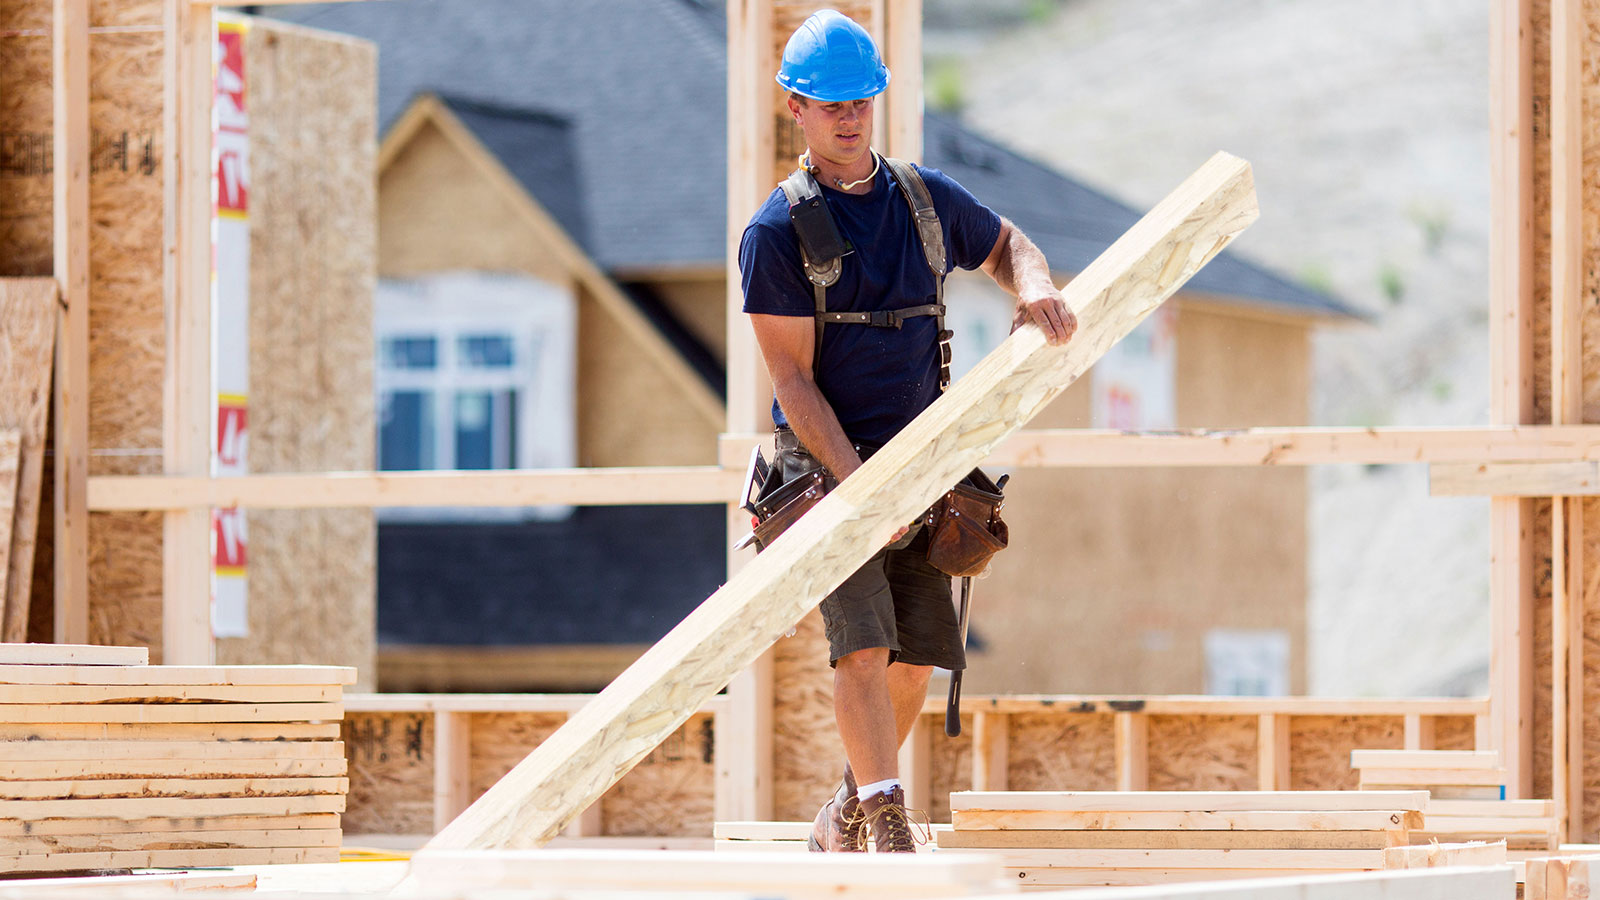 Worker carrying Tolko engineered wood product at construction site